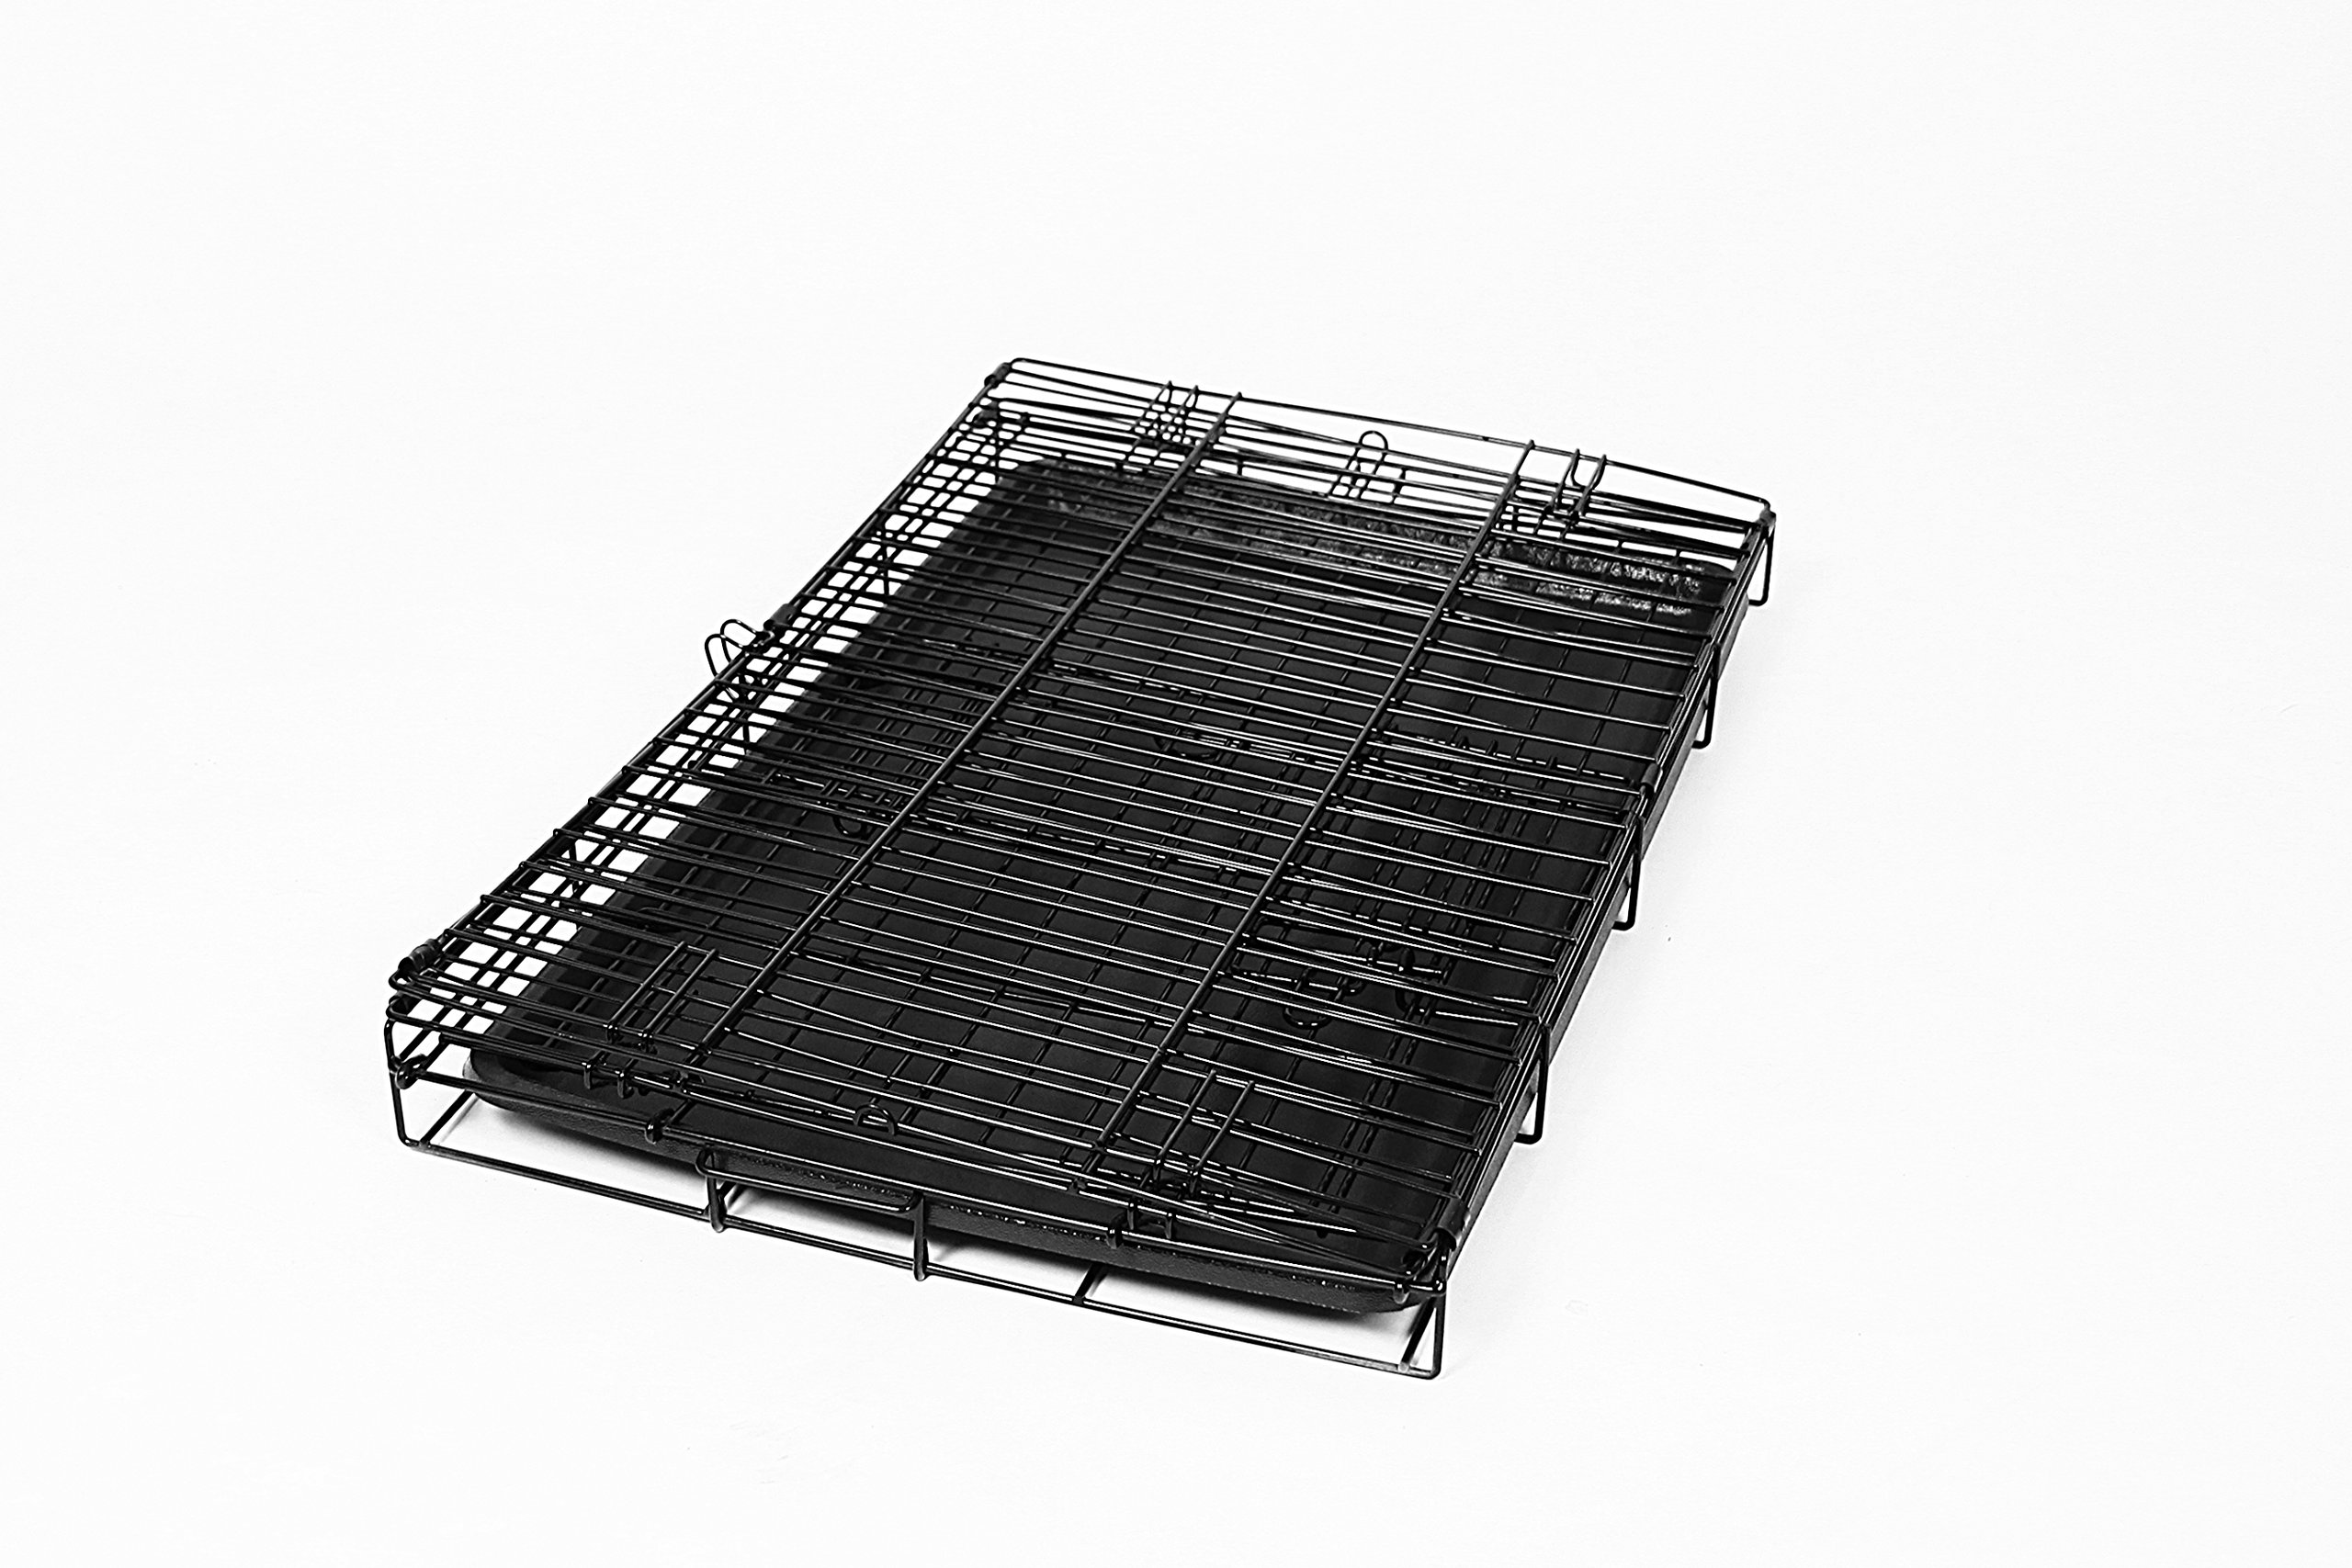 Carlson Pet Products Secure and Foldable Single Door Metal Dog Crate, Medium by Carlson Pet Products (Image #4)